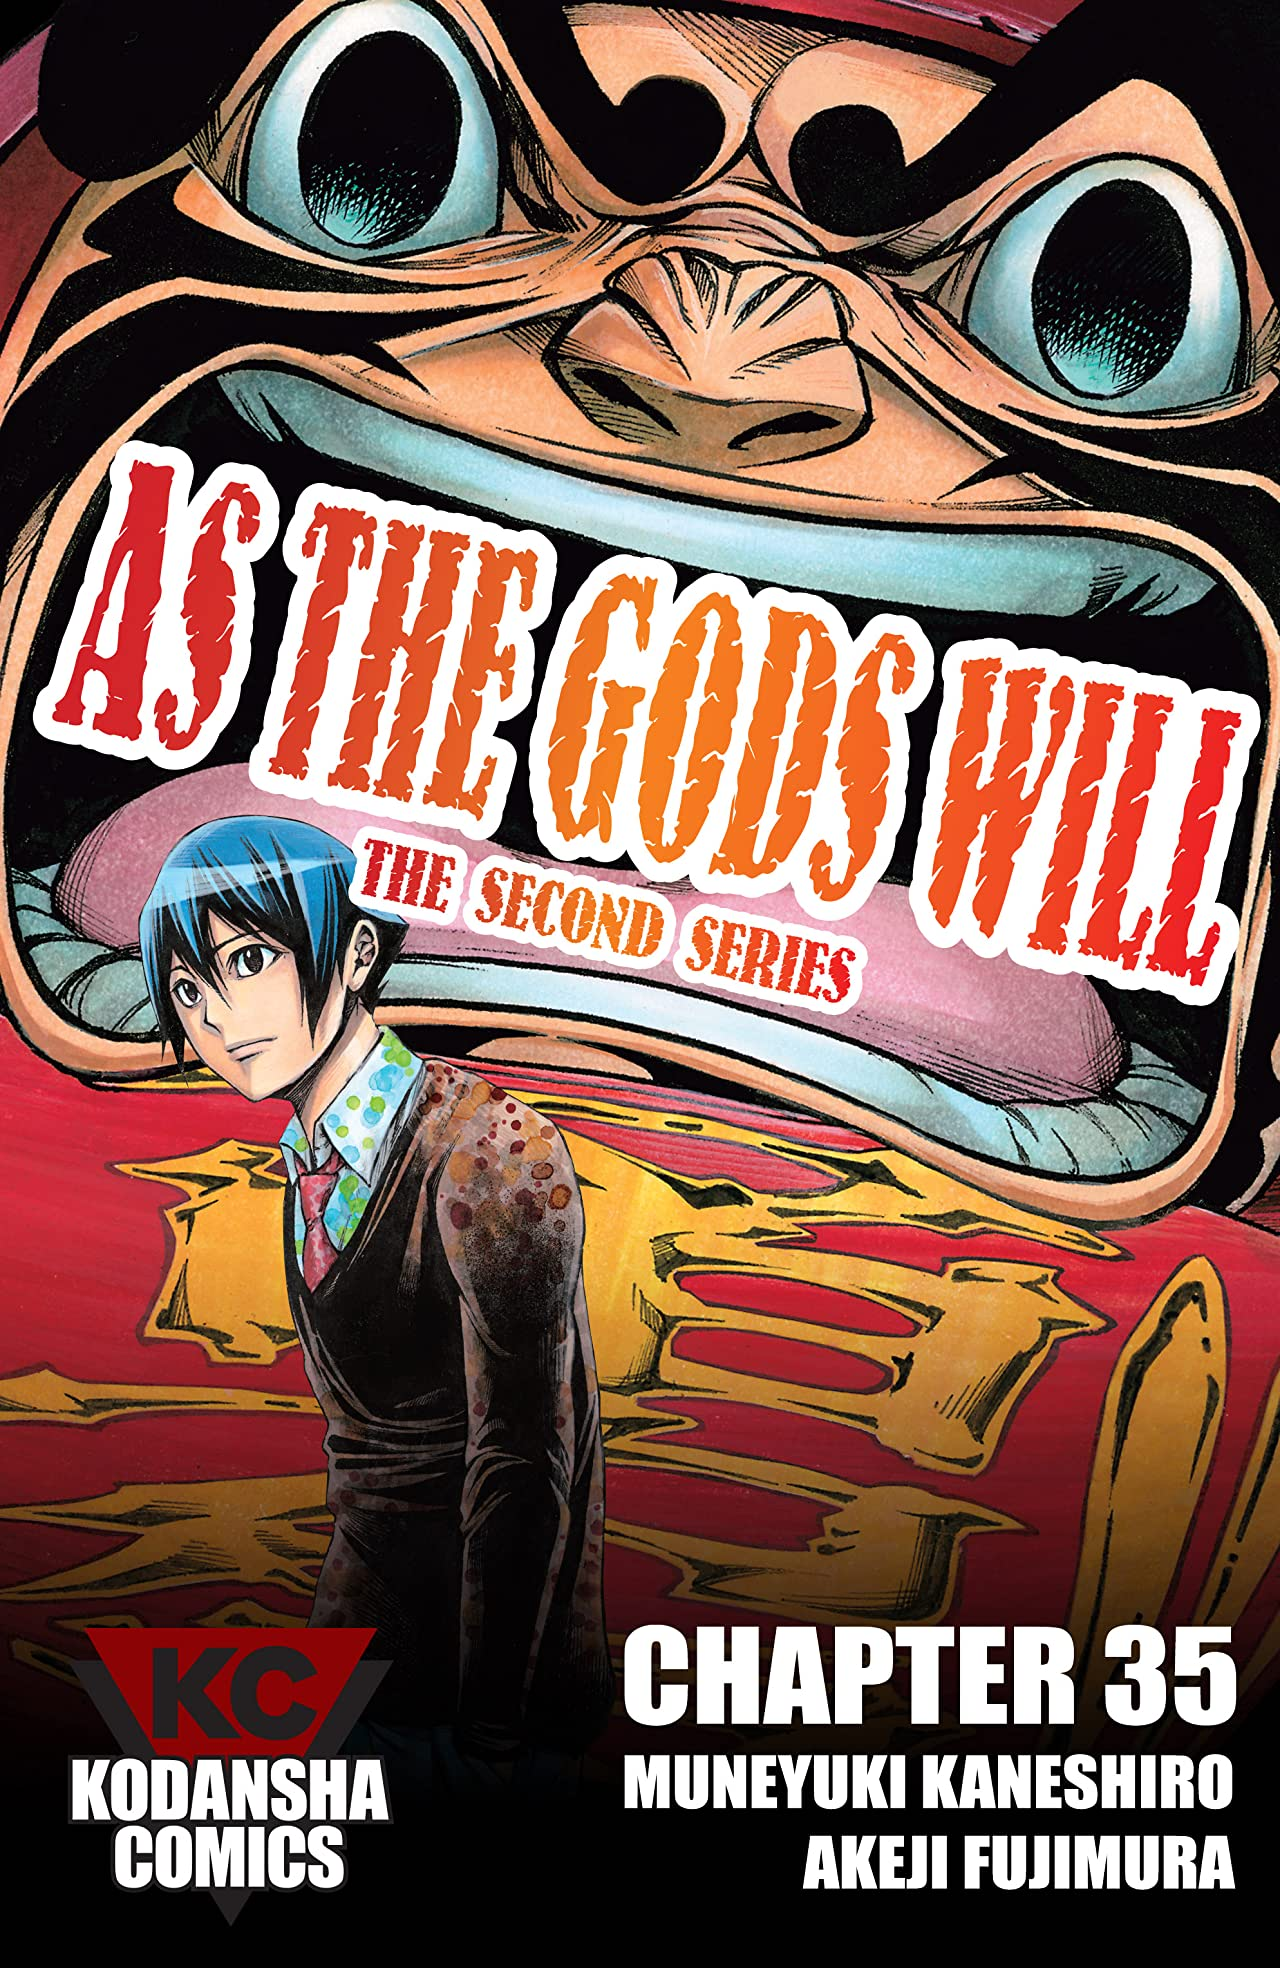 As The Gods Will: The Second Series #35